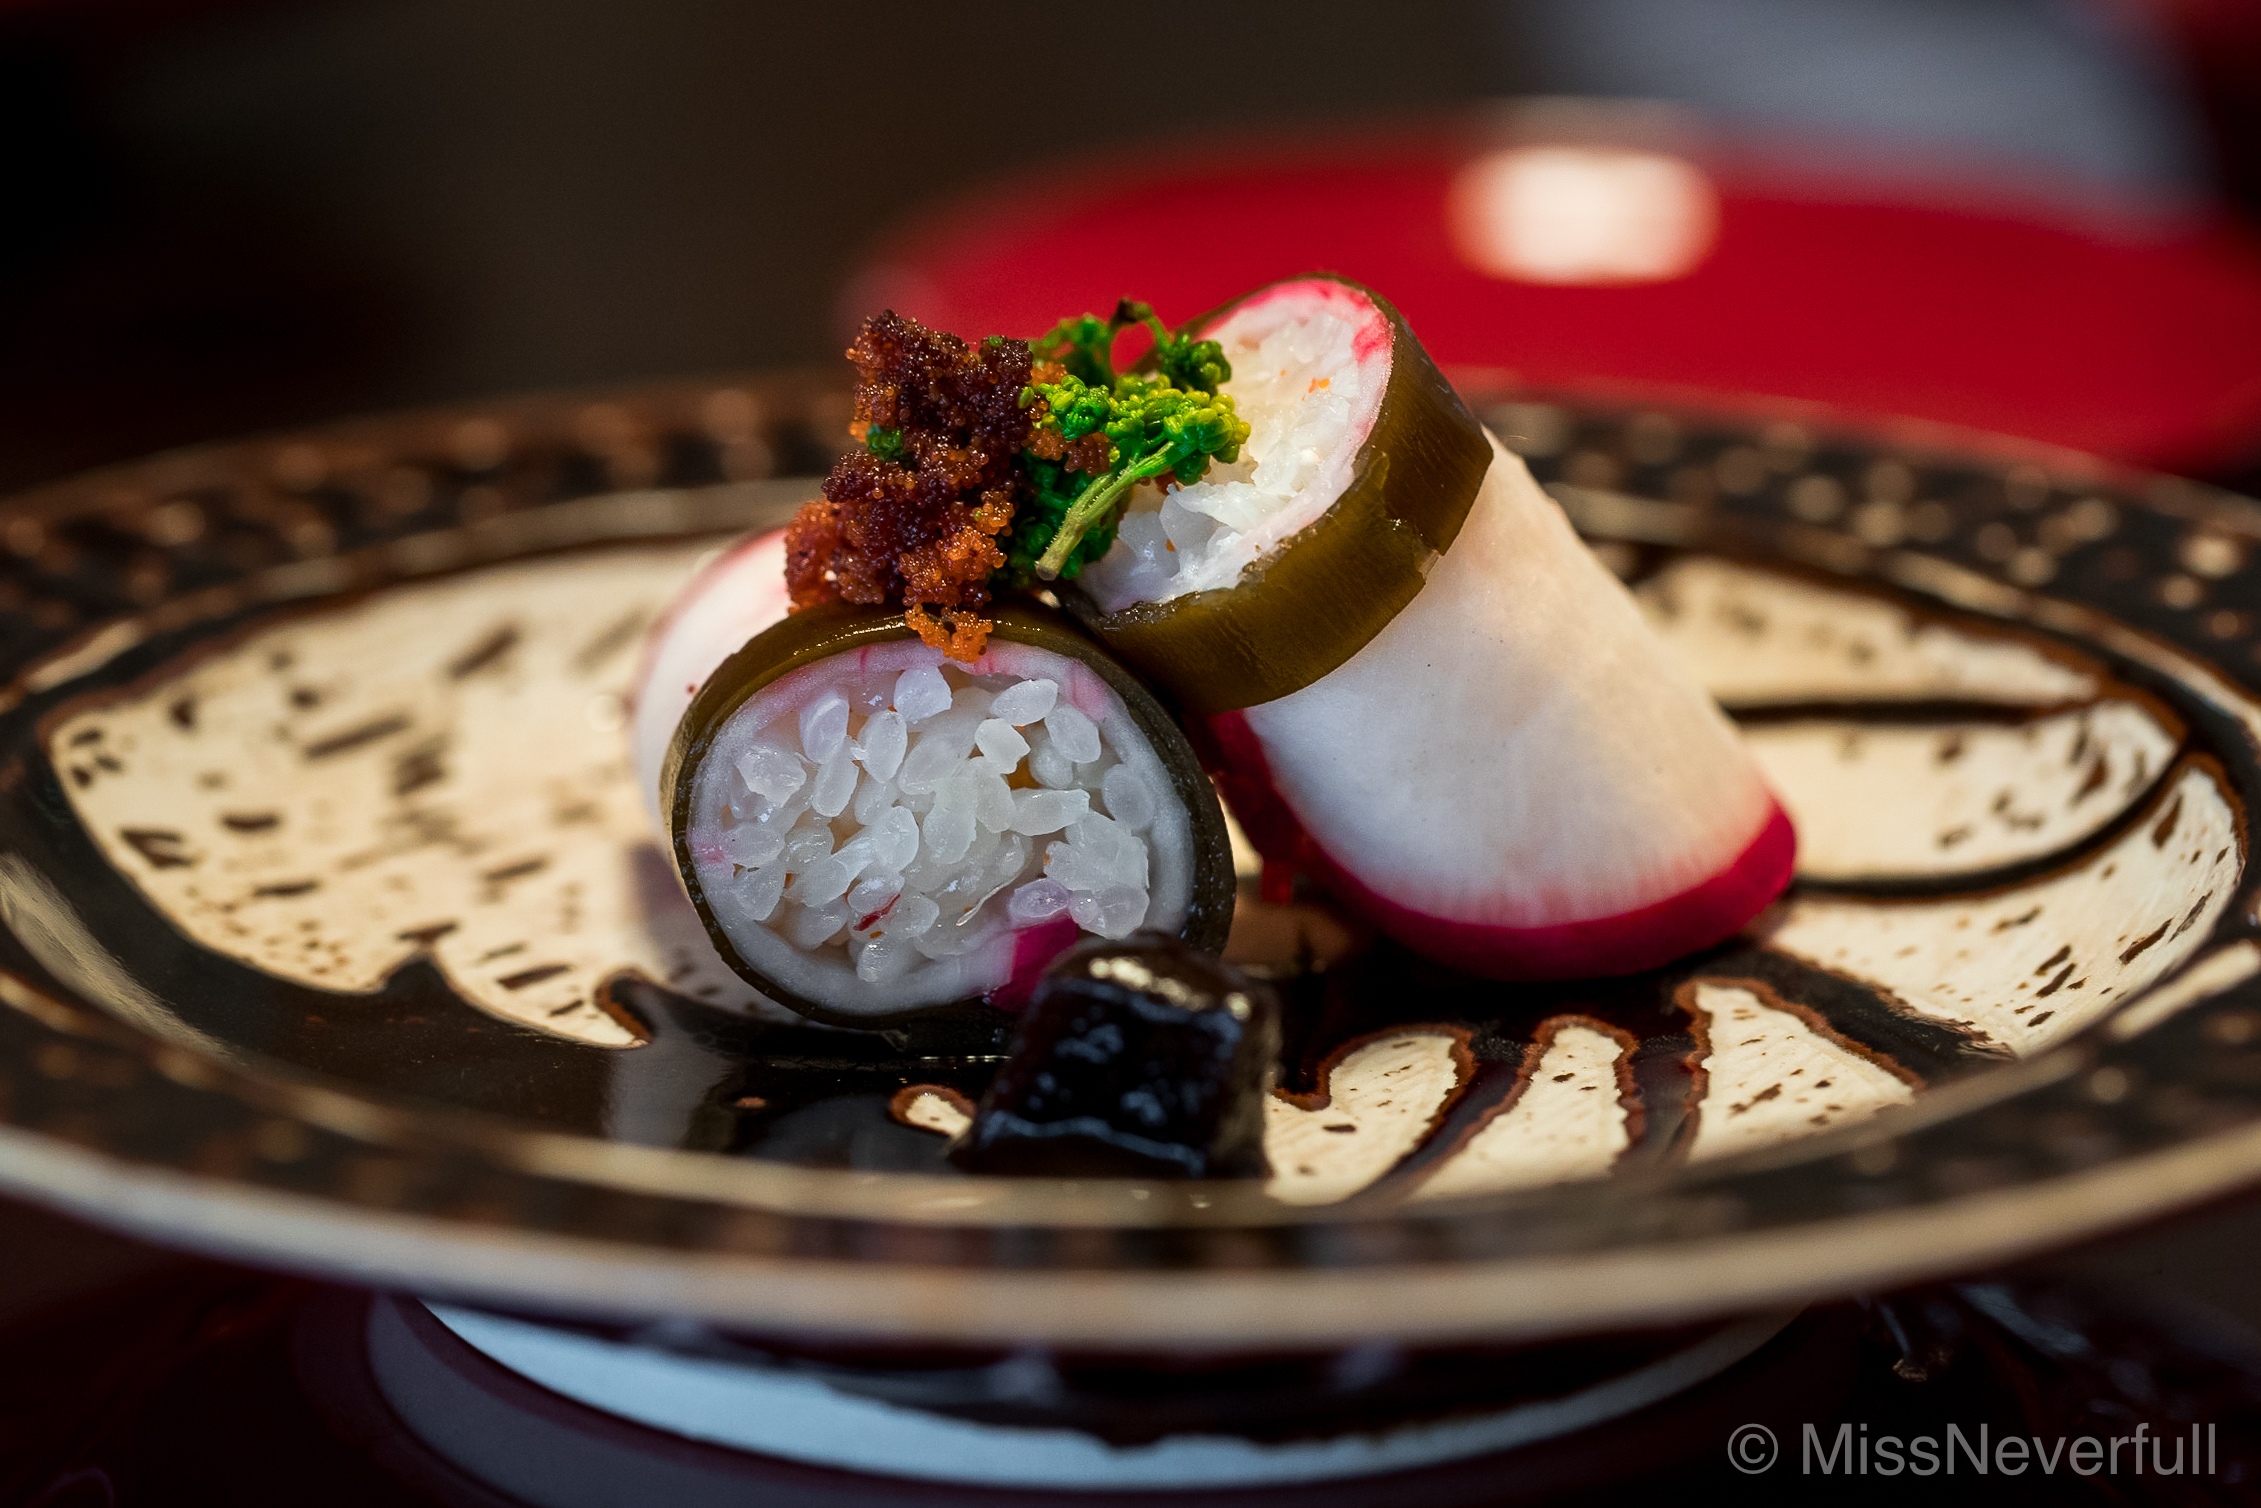 5. Pickled turnip rolled with rice